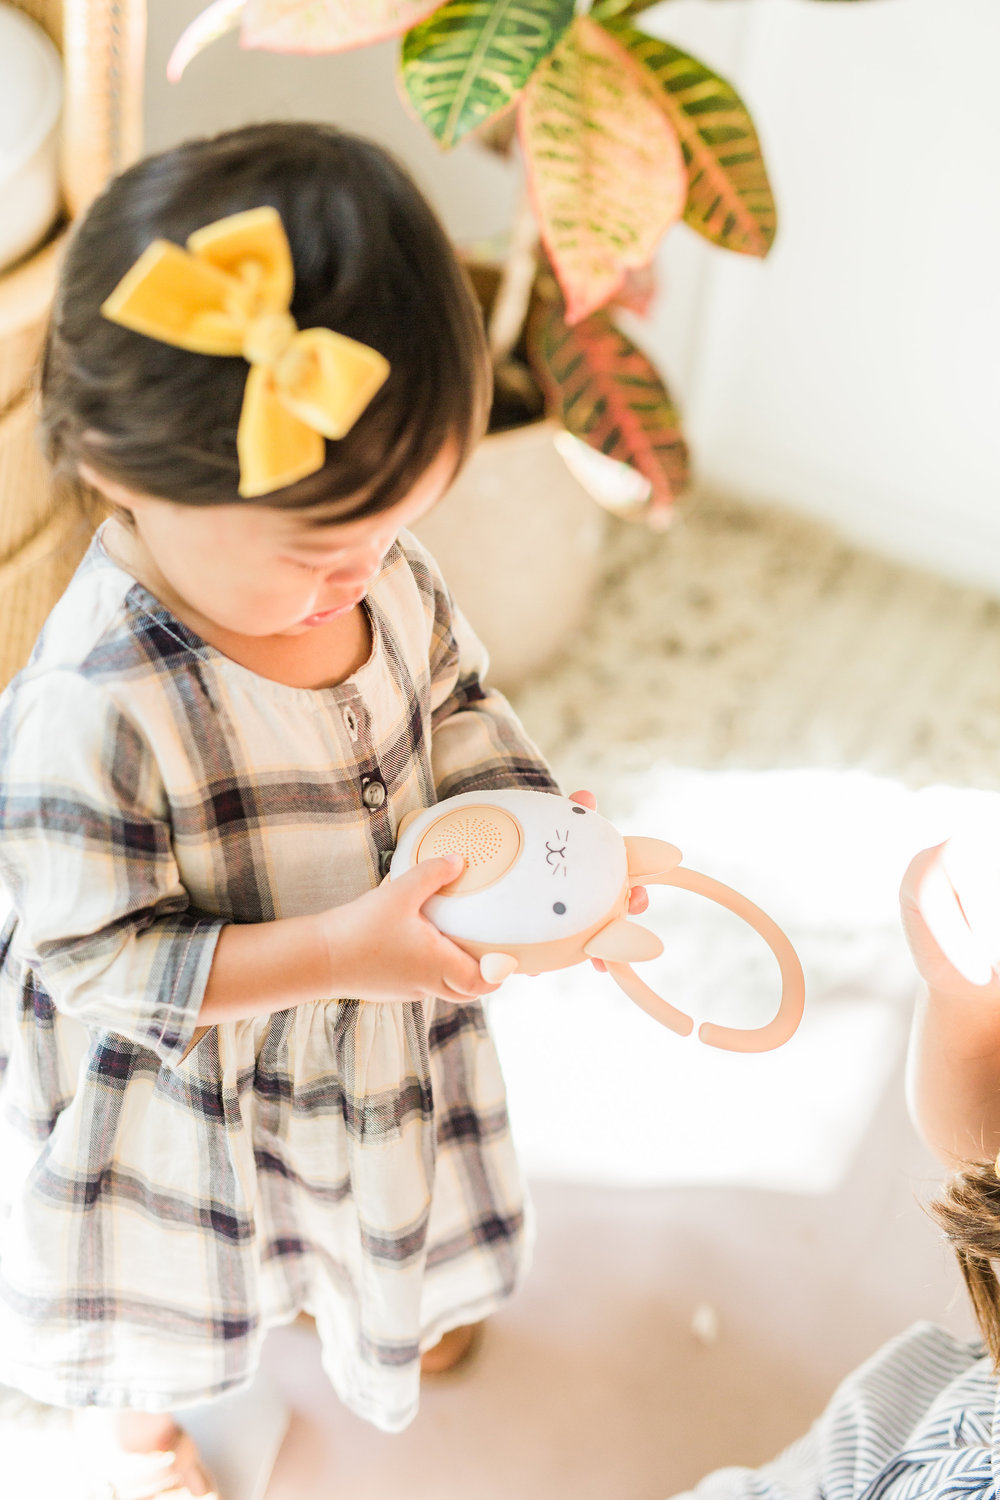 Wav hello sound bub review 3 ways to incorporate music into your toddler's day